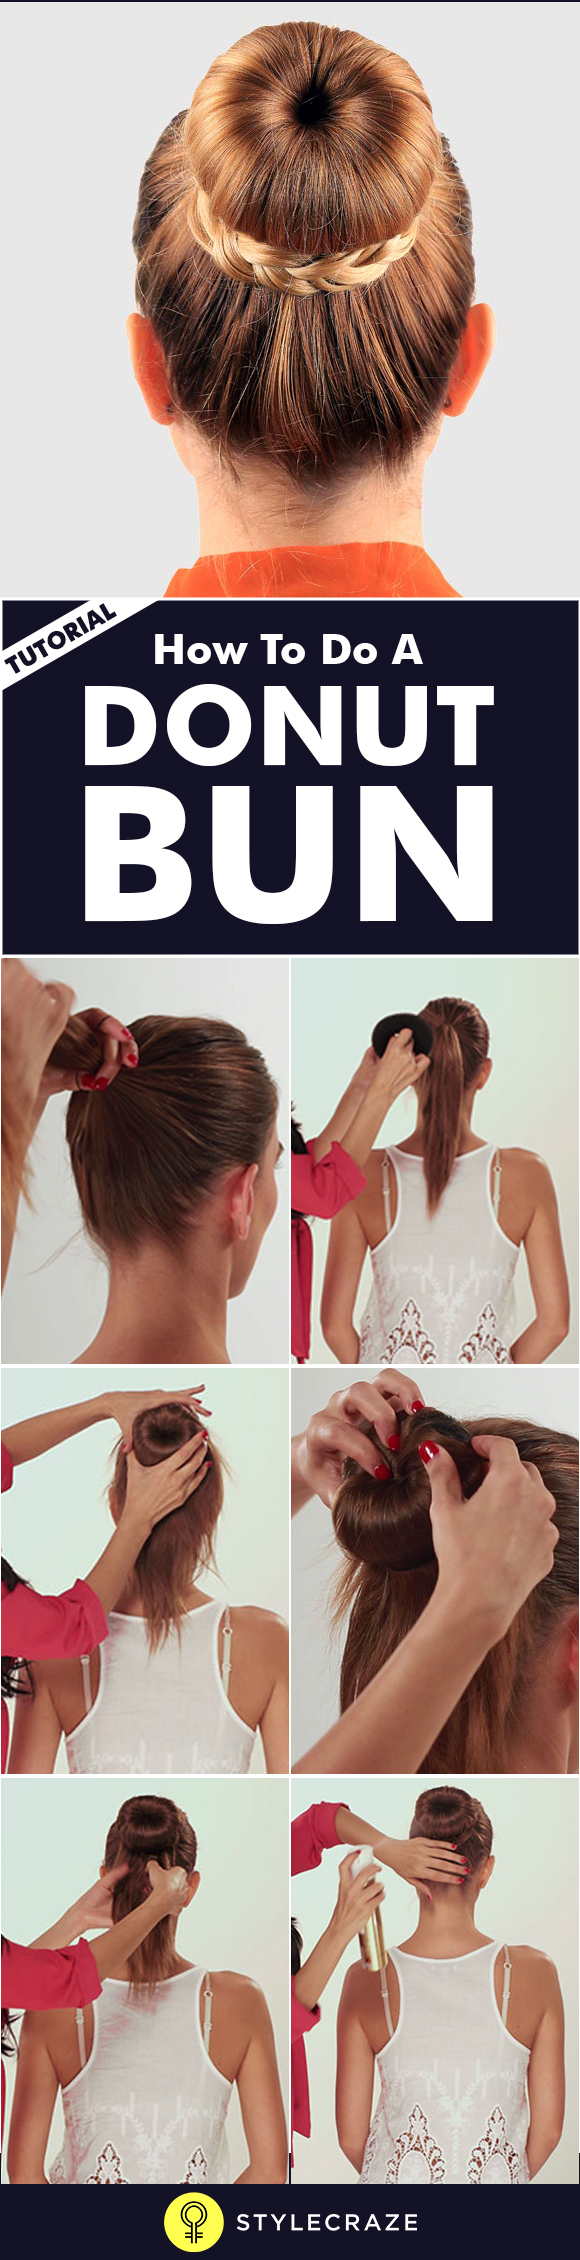 Home » Posts » Articles » Hair Styles » Bun Hairstyles